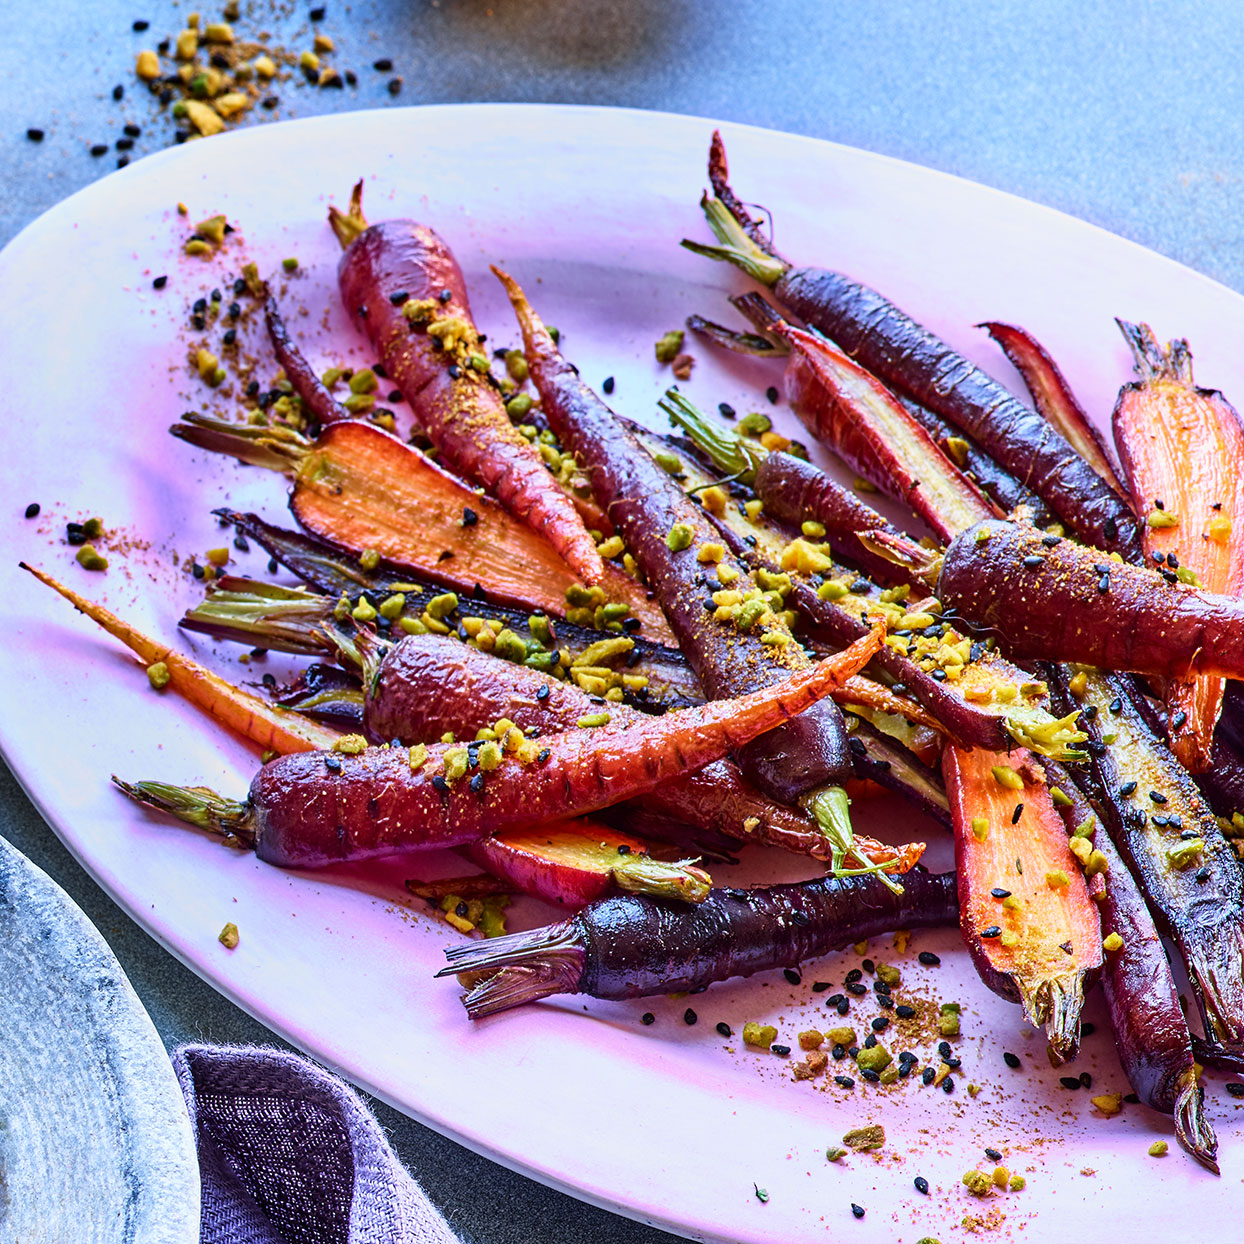 We love how the Egyptian nut, seed and spice blend dukkah adds aroma, flavor and texture to this otherwise simple purple carrot recipe. Source: EatingWell Magazine, April 2020